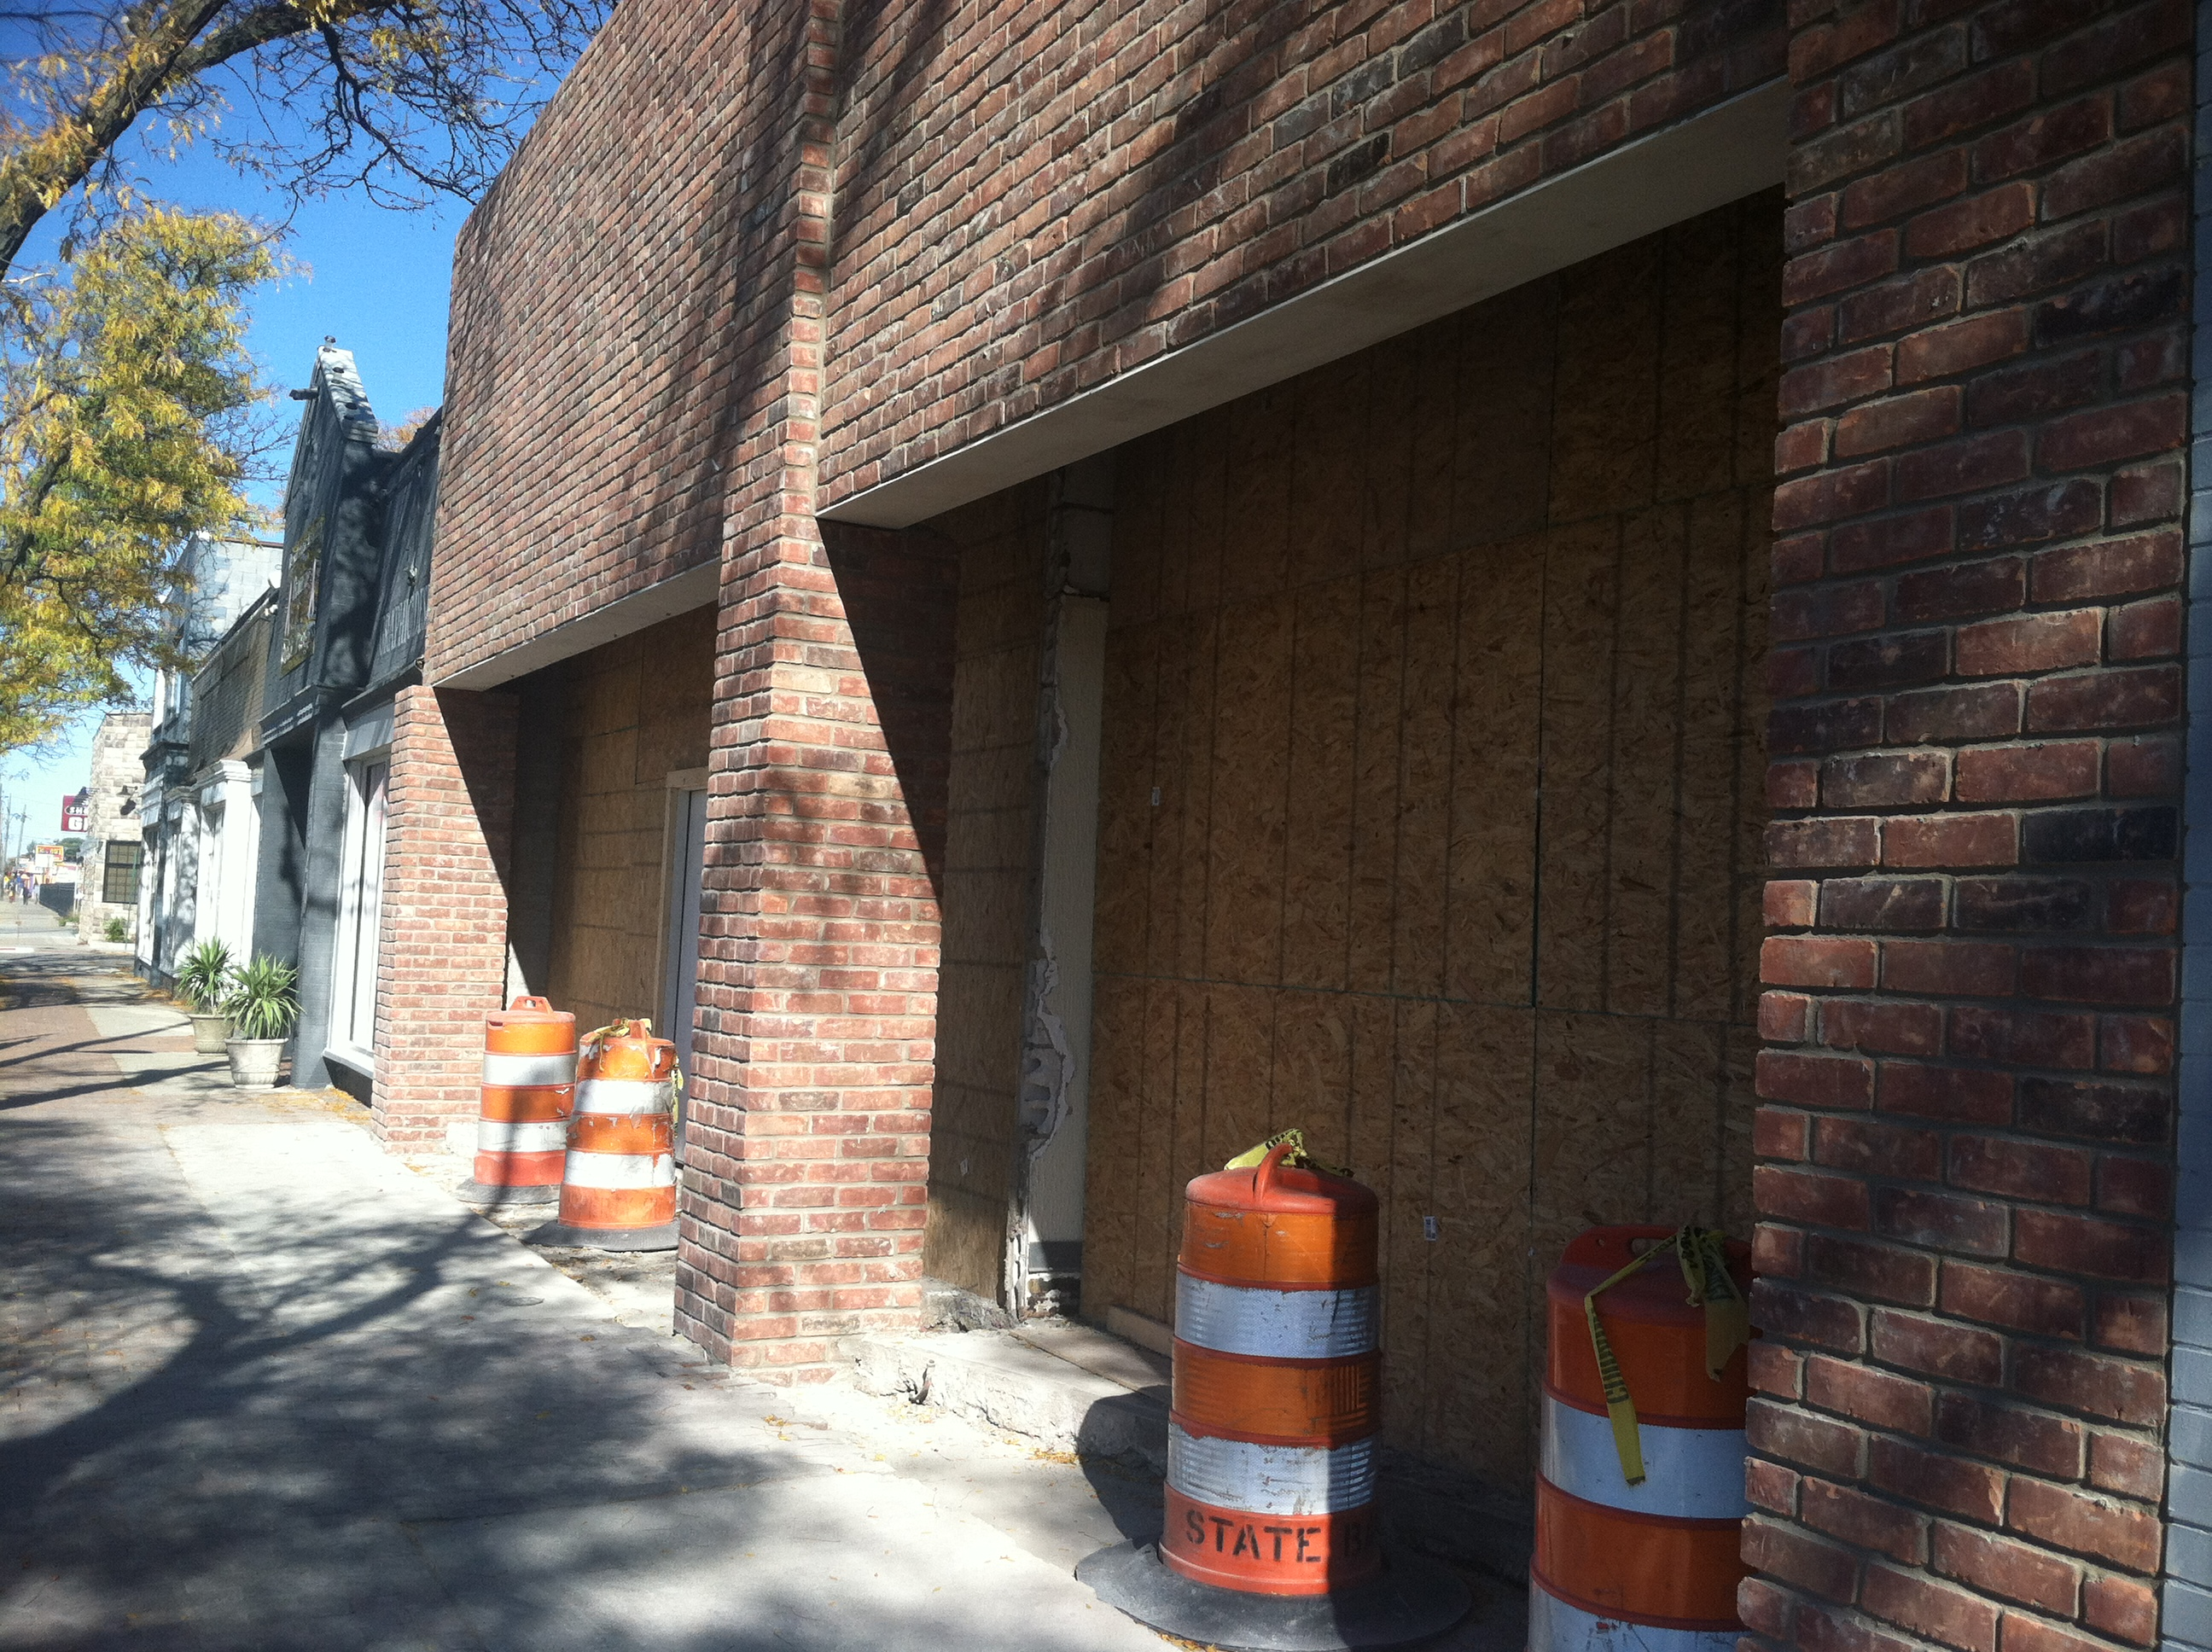 A fourth Bucharest Grill appears to be in the works on Livernois.